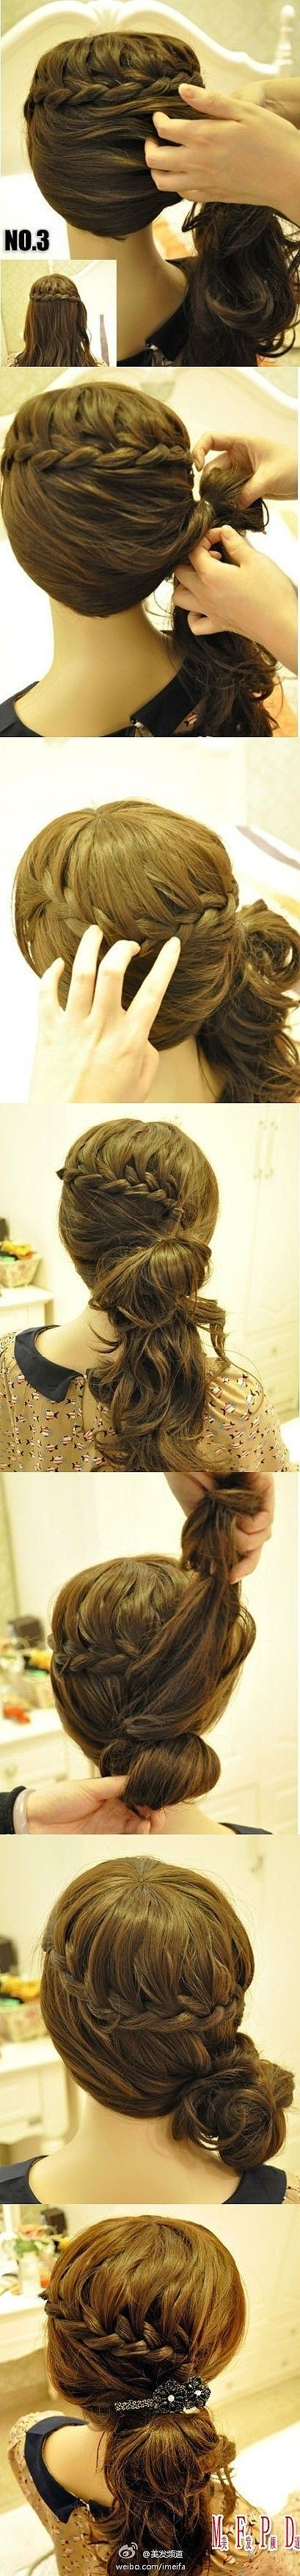 .Wedding Hair, Bridesmaid Hair, Waterfal Braids, Long Hair, Cute Hair, Messy Braids, Hair Style, Waterfall Braids, Side Braids